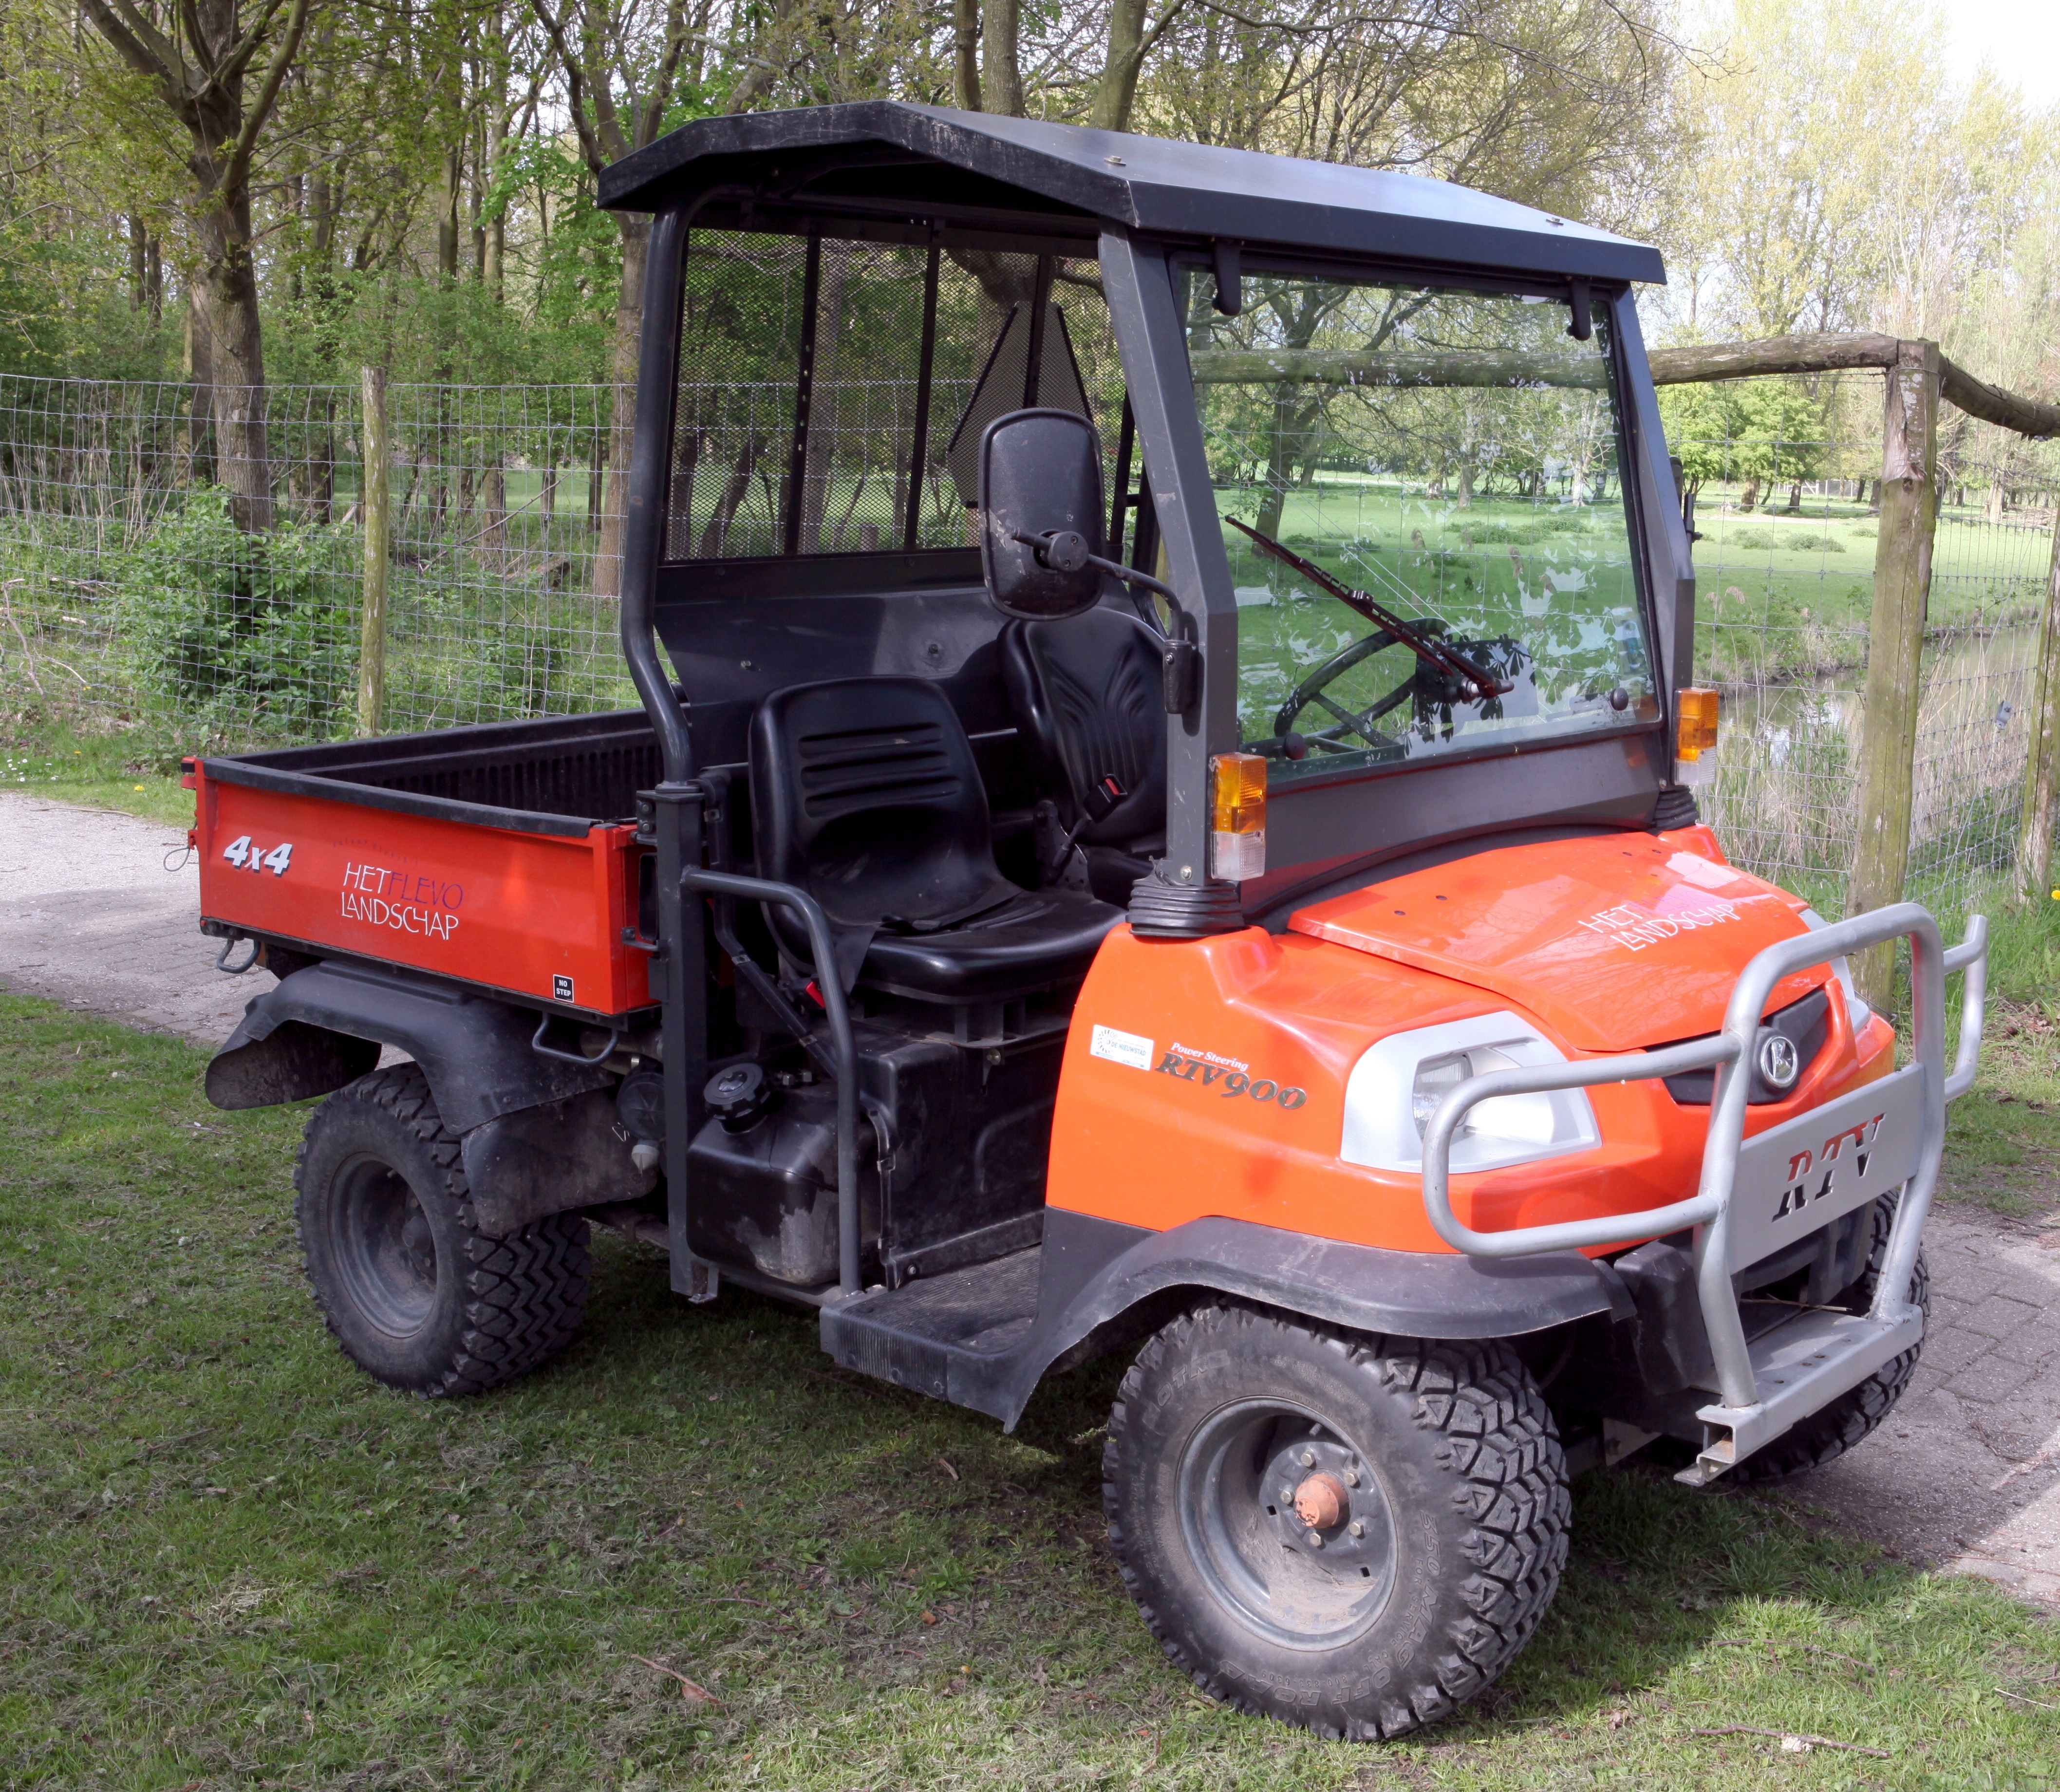 Vapurodsetgu additionally Autocar Wiring Diagram Diagrams likewise 243886514 Honda Fourtrax 350 Foreman 350d Service together with Car Battery Kill Switch Wiring Diagram as well Photo 1. on honda atv diagrams